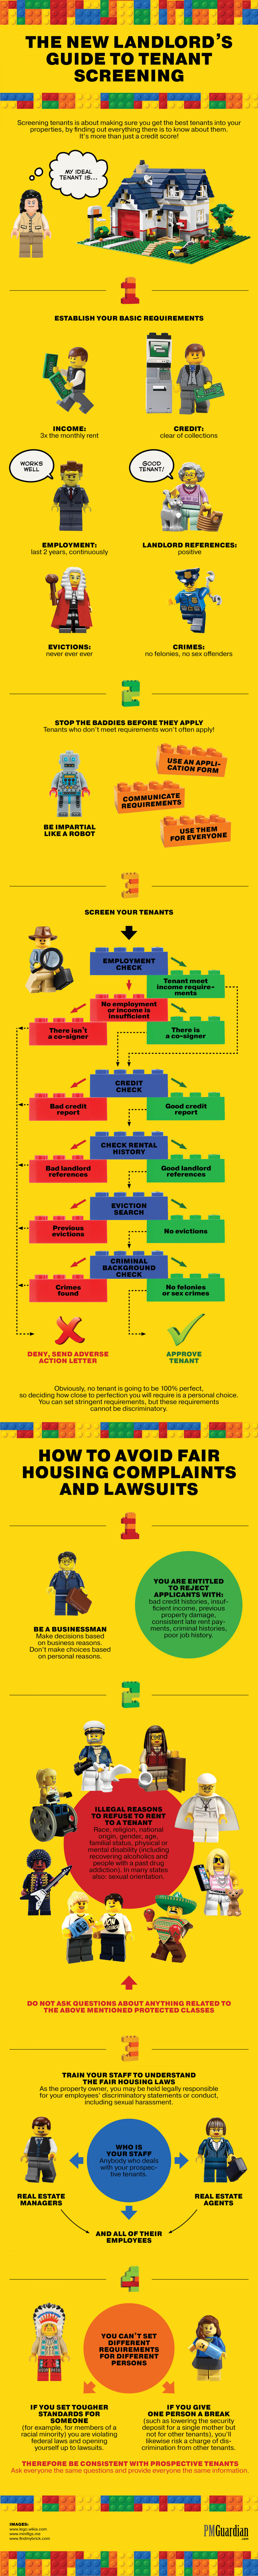 The New Landlord's Guide to Tenant Screening Infographic